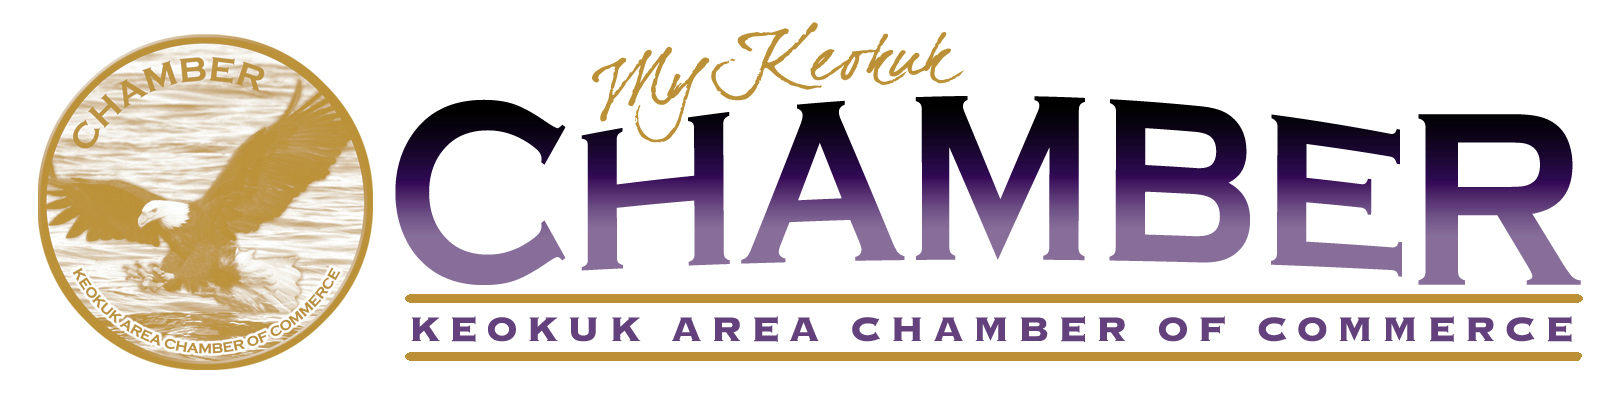 Keokuk Area Chamber of Commerce